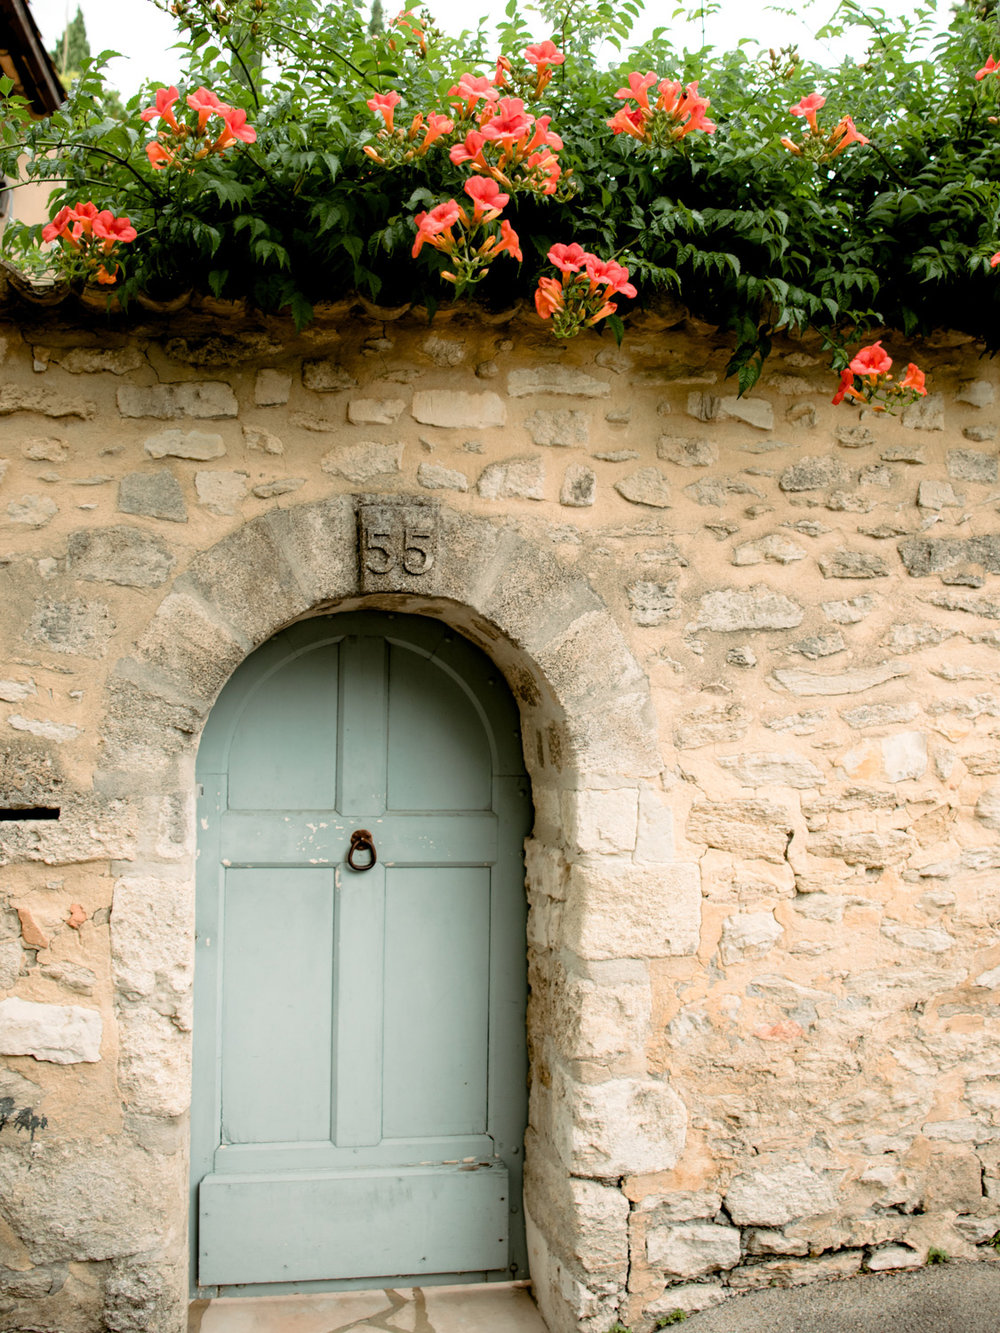 A door in a beautiful alley outside Fort Saint-andre near Avignon, France.